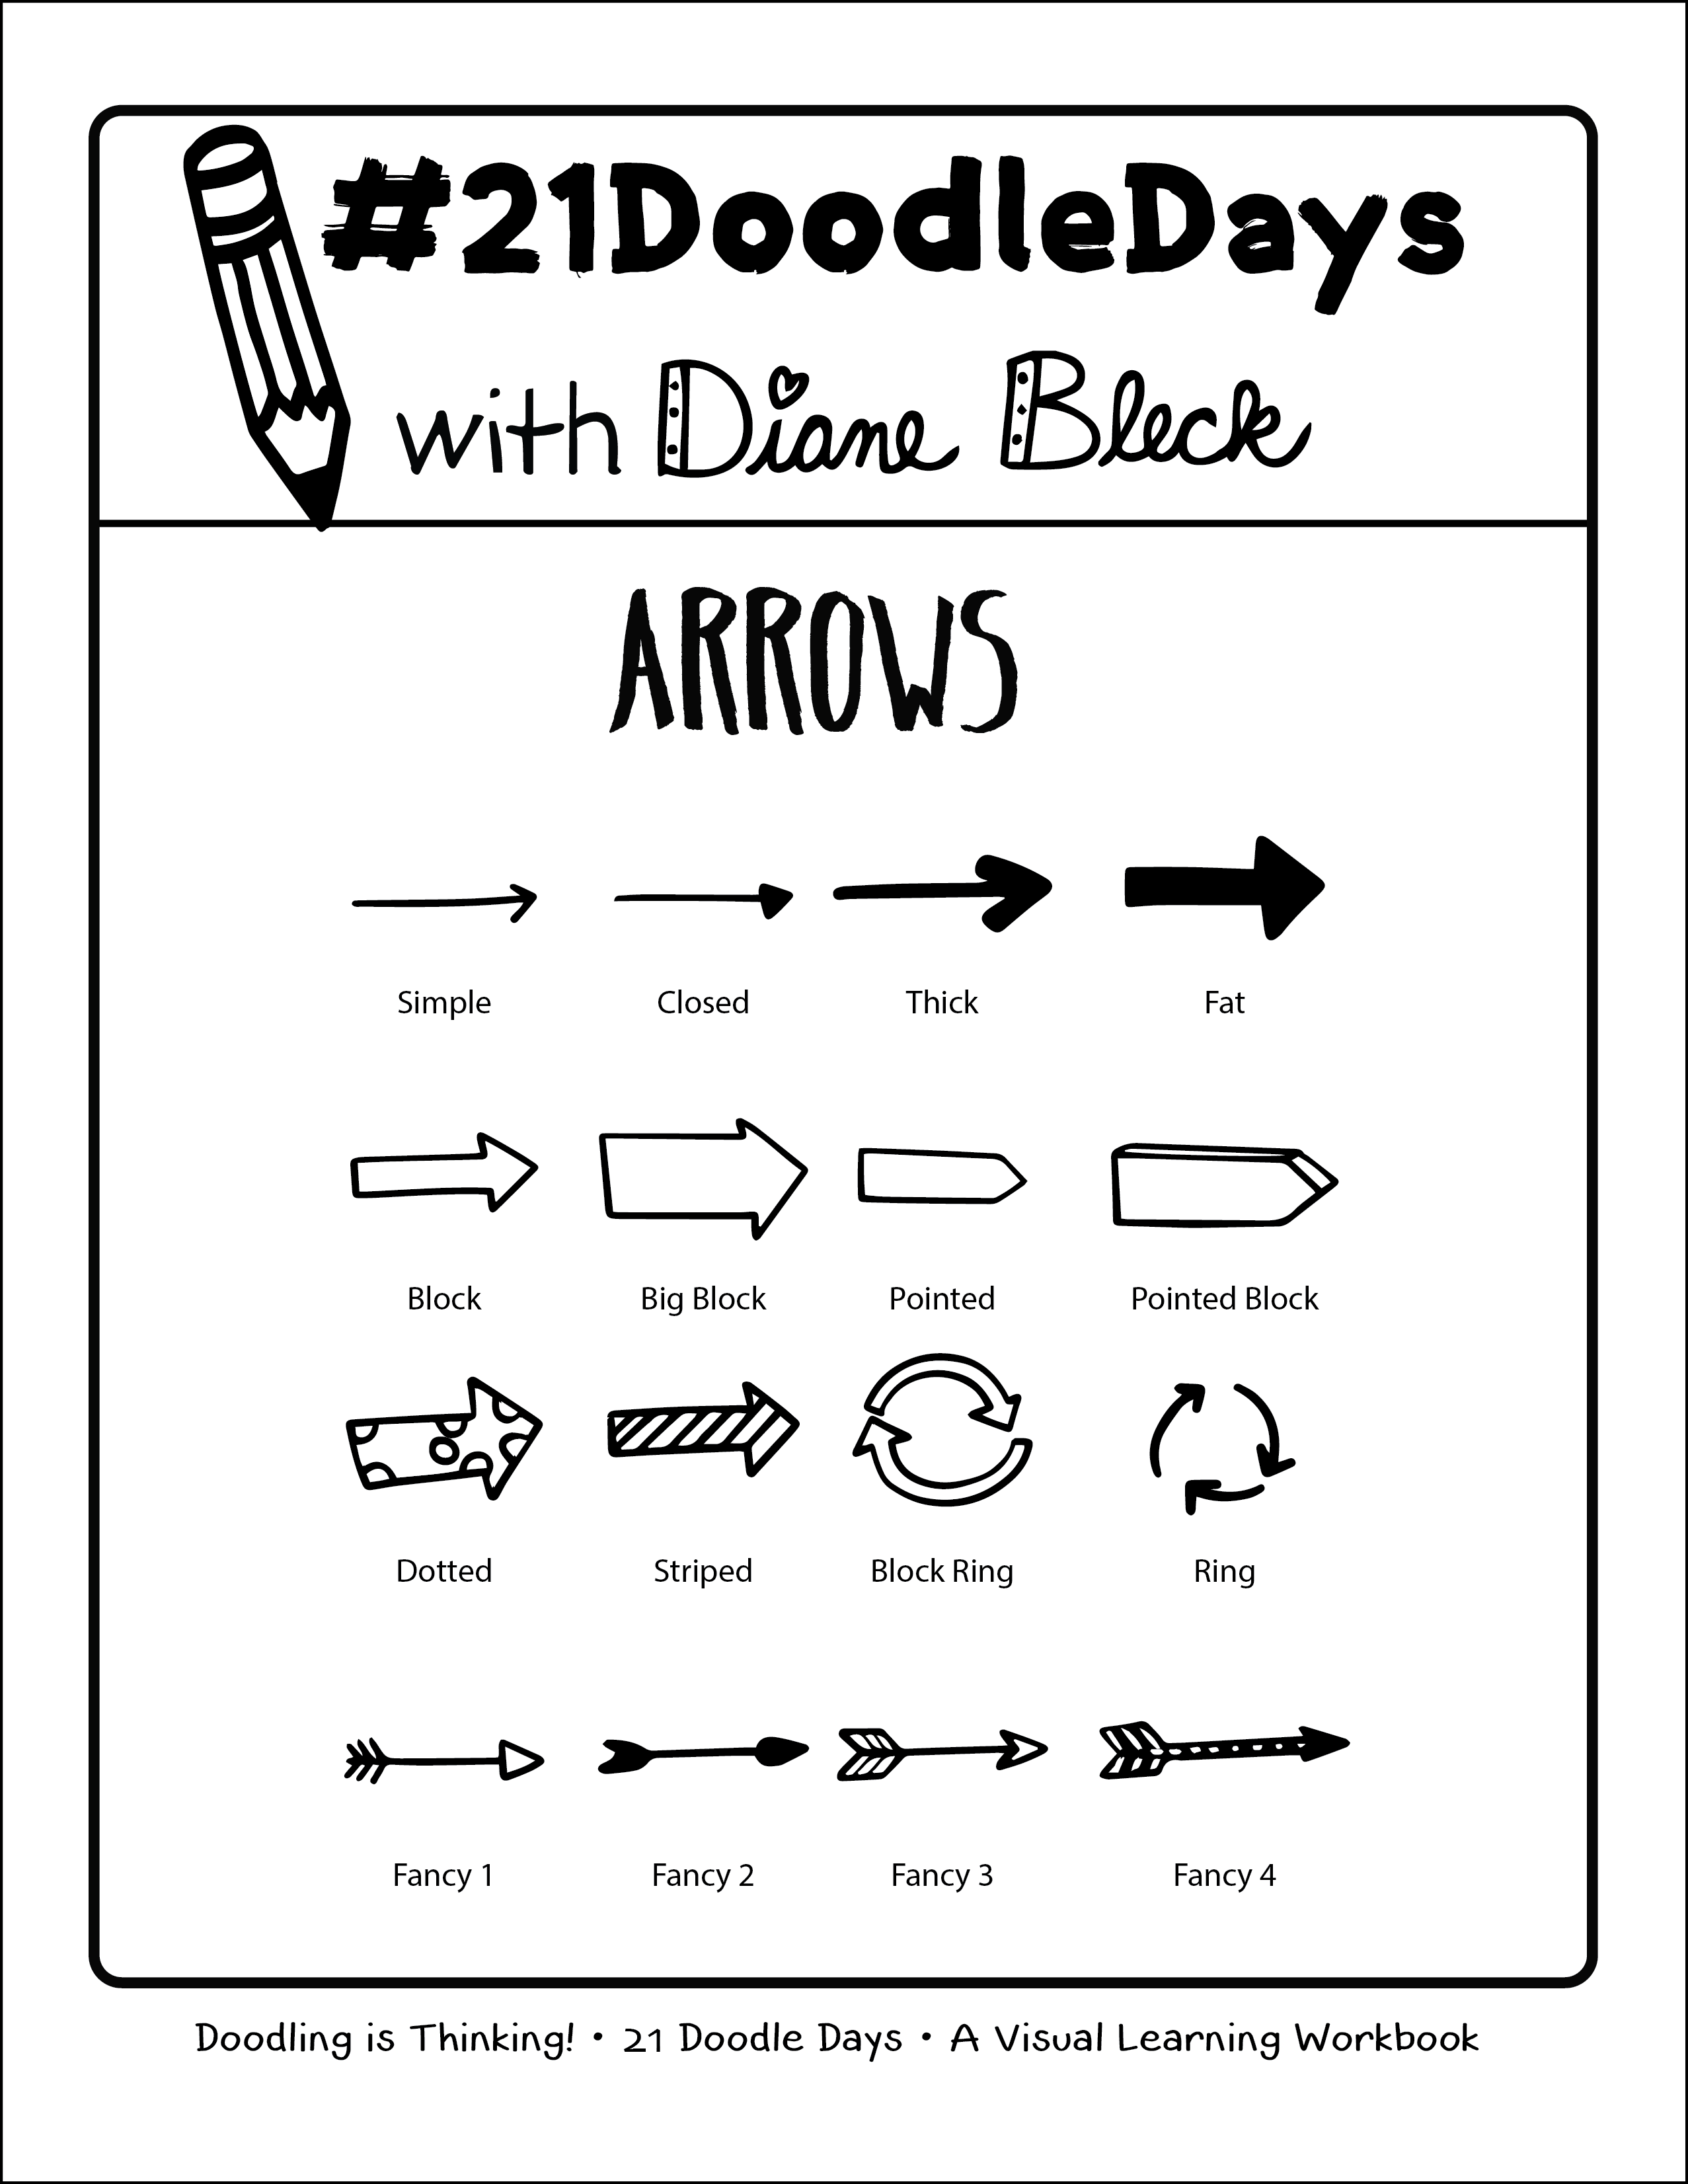 Lesson 08 Arrows 21 Doodle Days Learn How To Art By Draw Wire Diagrams Http Picsboxbiz Key Howtodraw Diane Bleck Of The Institute